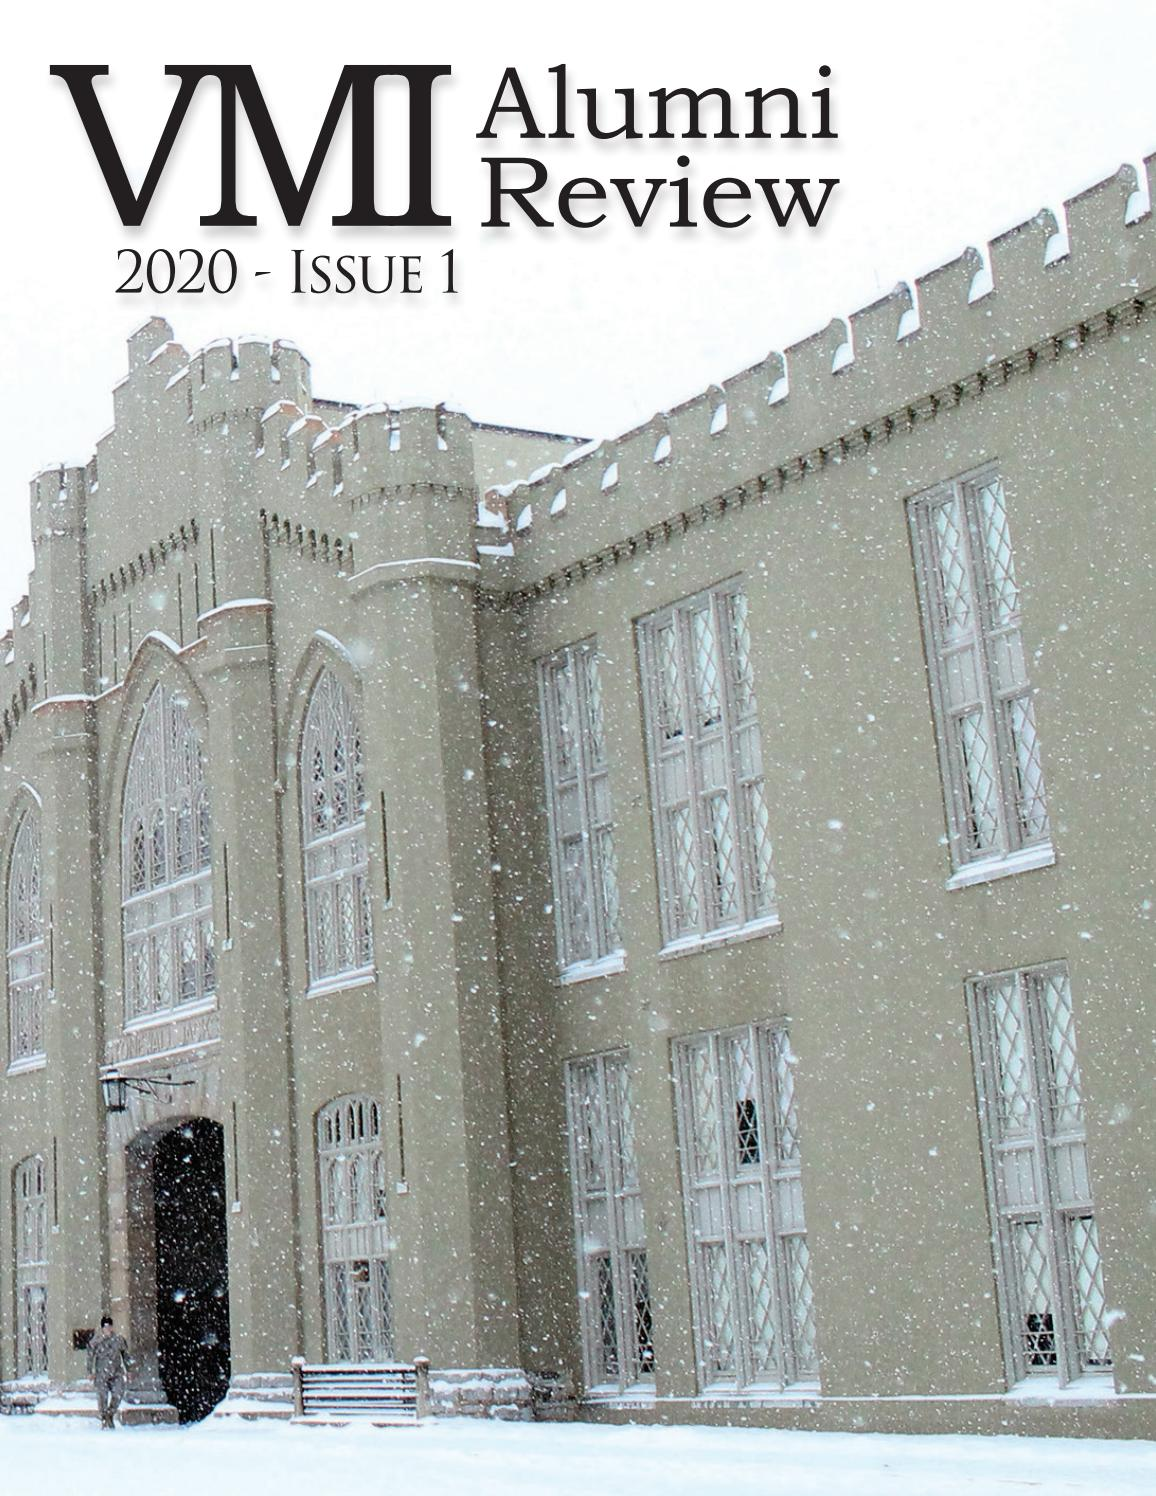 Vmi Alumni Review 2020 Issue 1 By Vmi Alumni Agencies Issuu